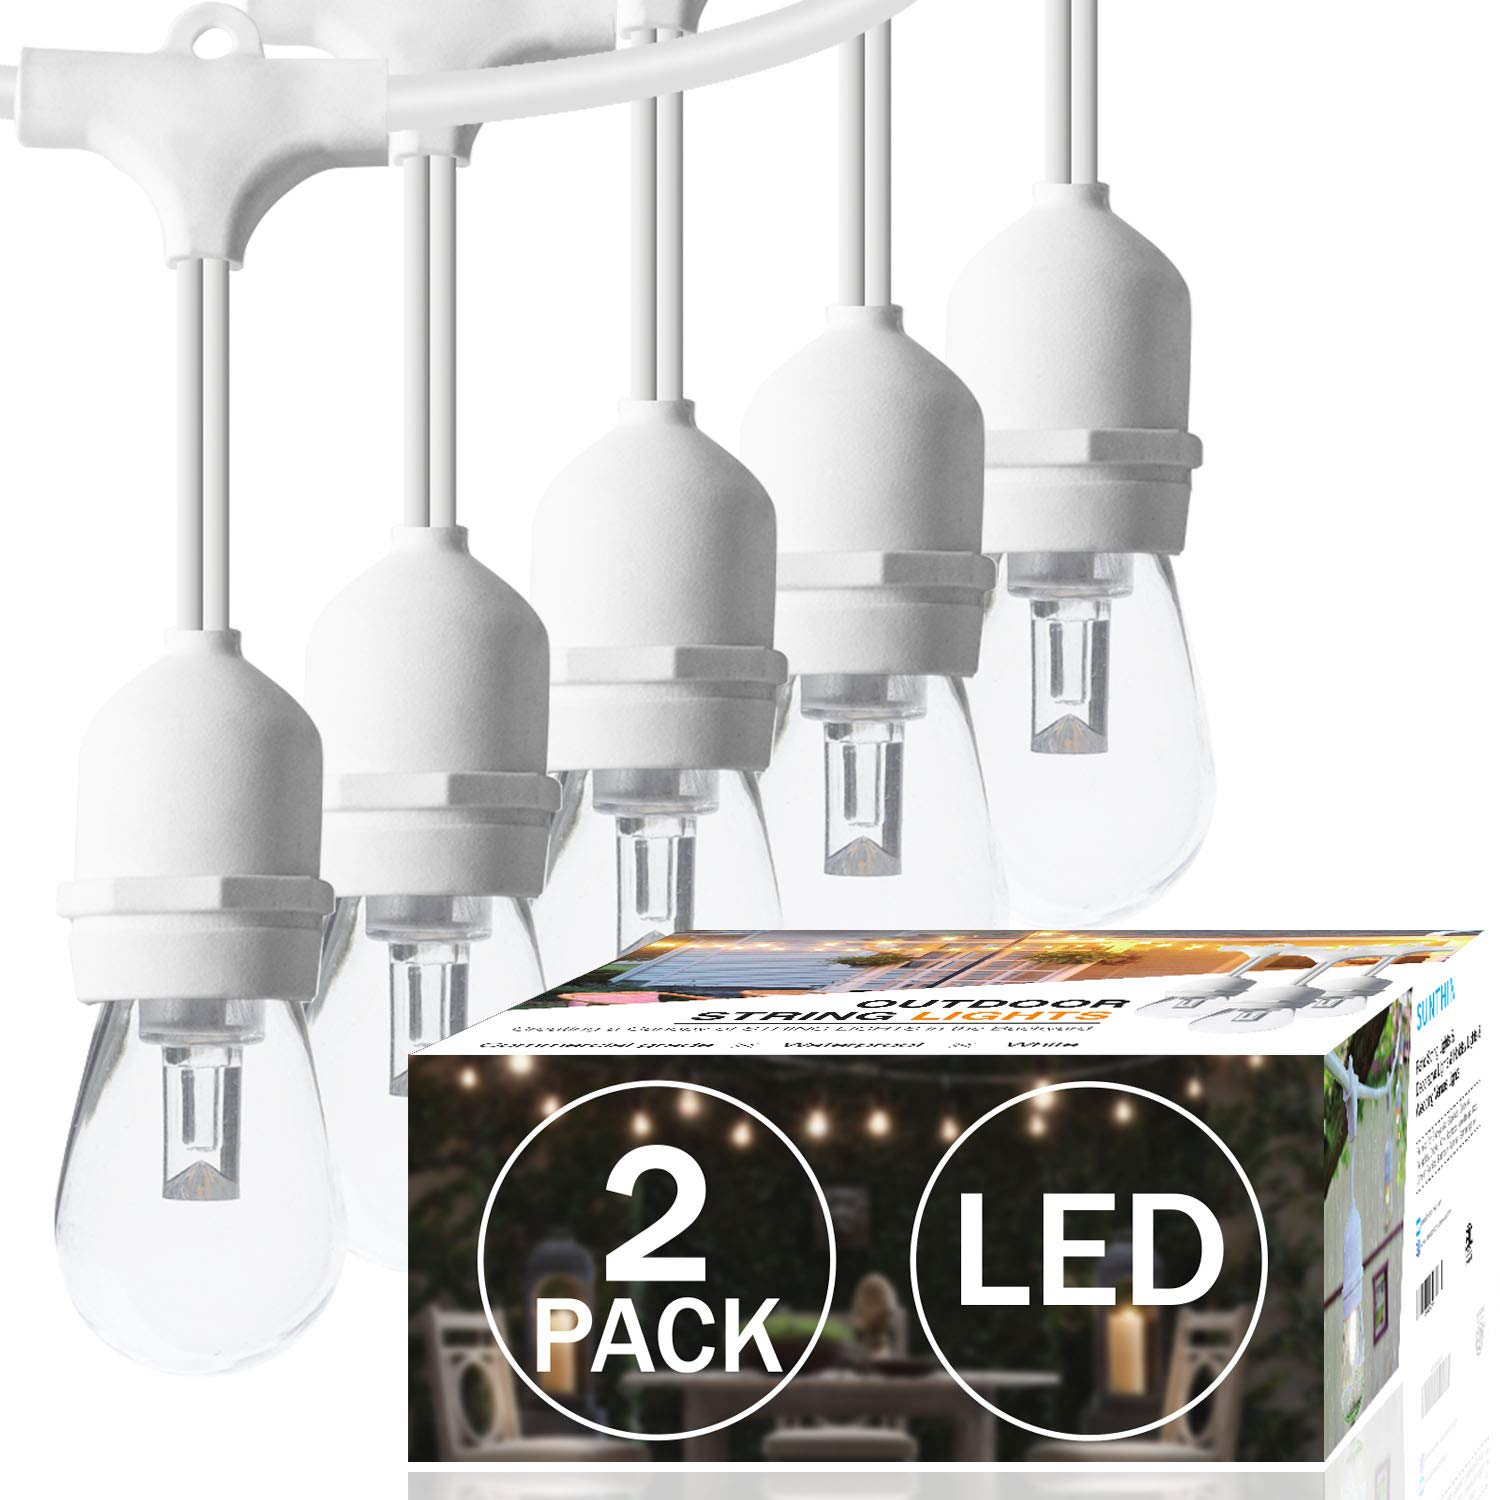 SUNTHIN 2 Pack 48ft Dimmable White Outdoor String Lights LED Patio Lights String with 15 x E26 Sockets 18 x 0.9 Watt S14 Edison Bulbs 3 Spares Hanging Light Waterproof Wedding String Lighting